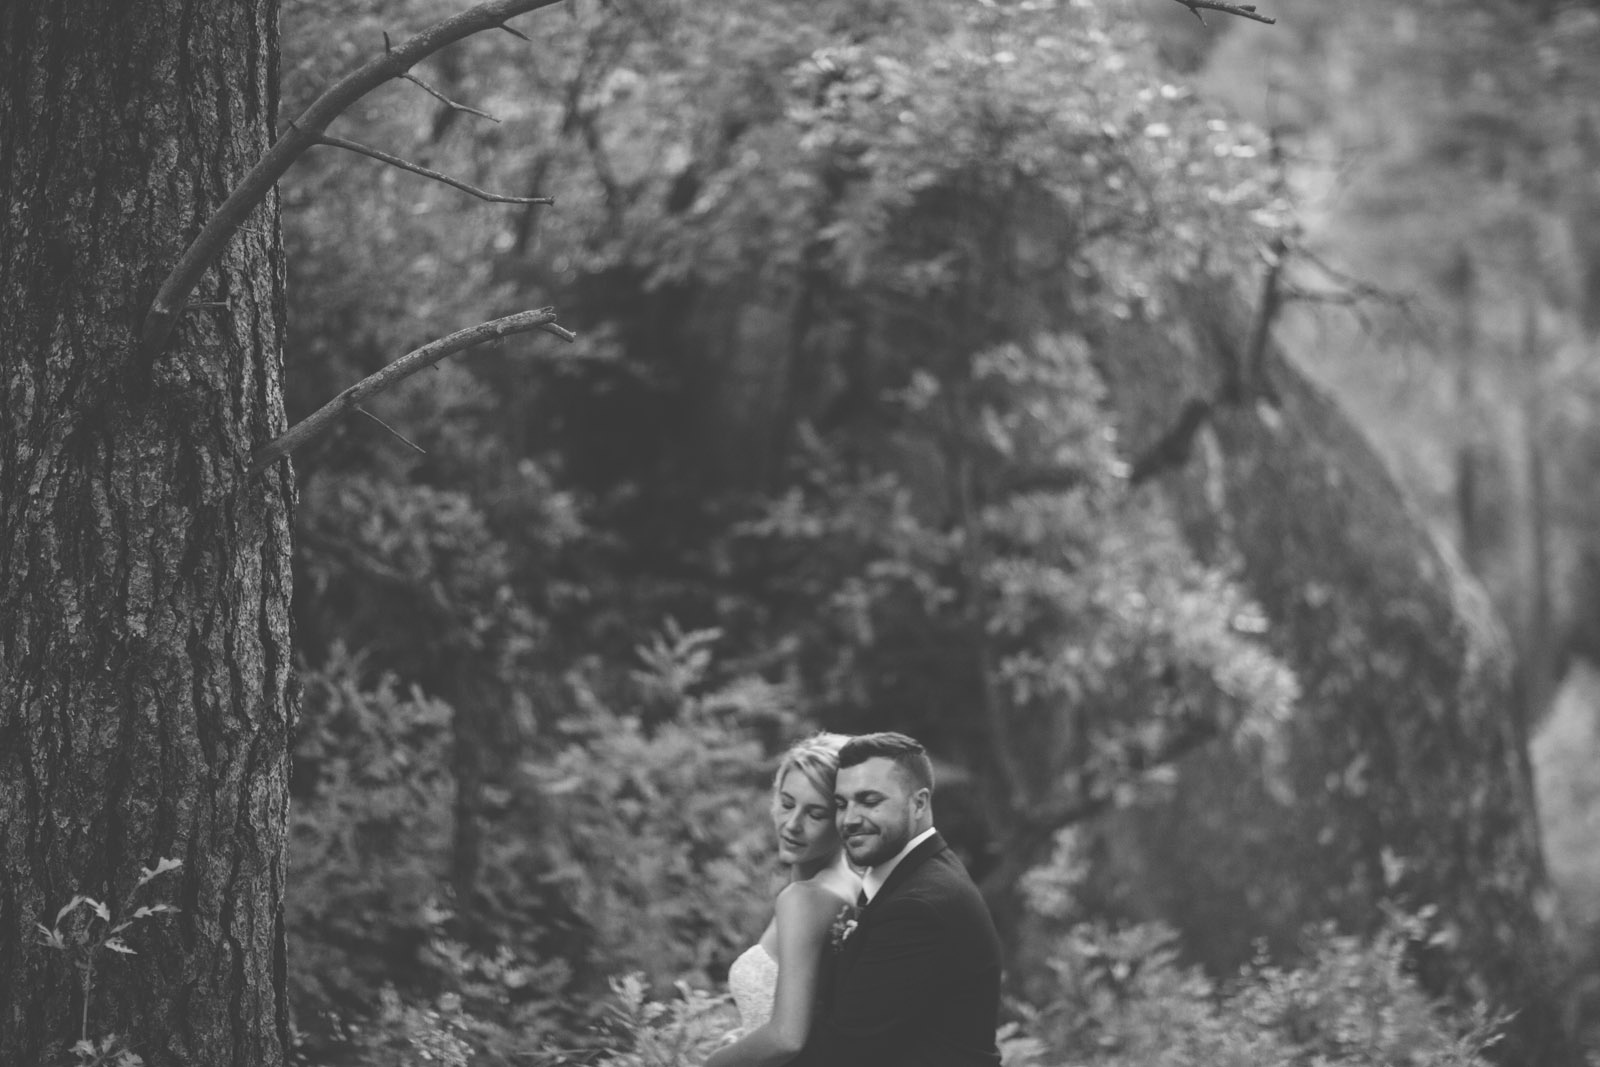 162-beautiful-bride-and-groom-photojournalist-portraits-at-elopement-wedding-in-durango-colorado-forest